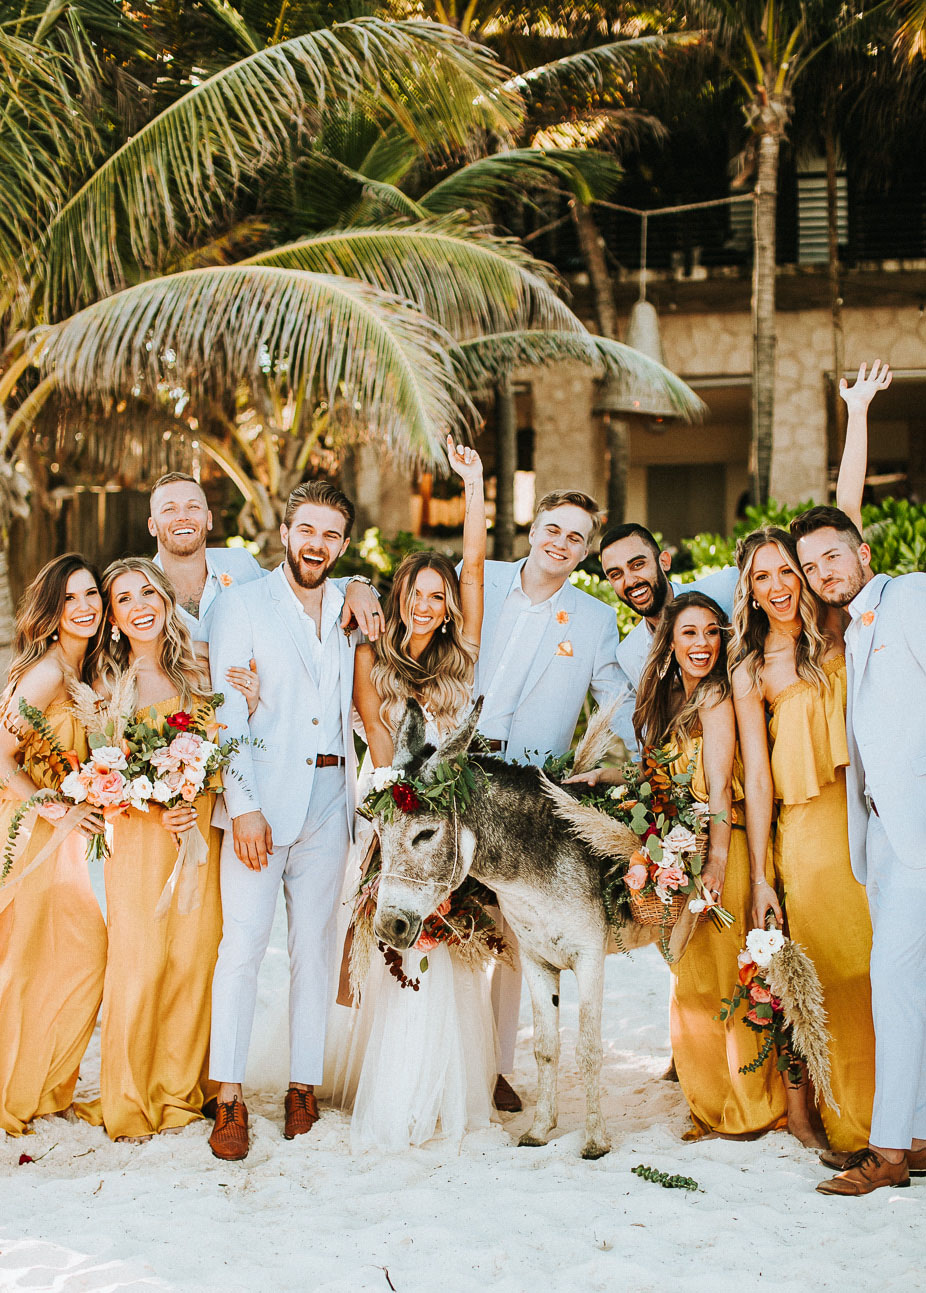 A donkey participated in the wedding, she was dressed up with blooms